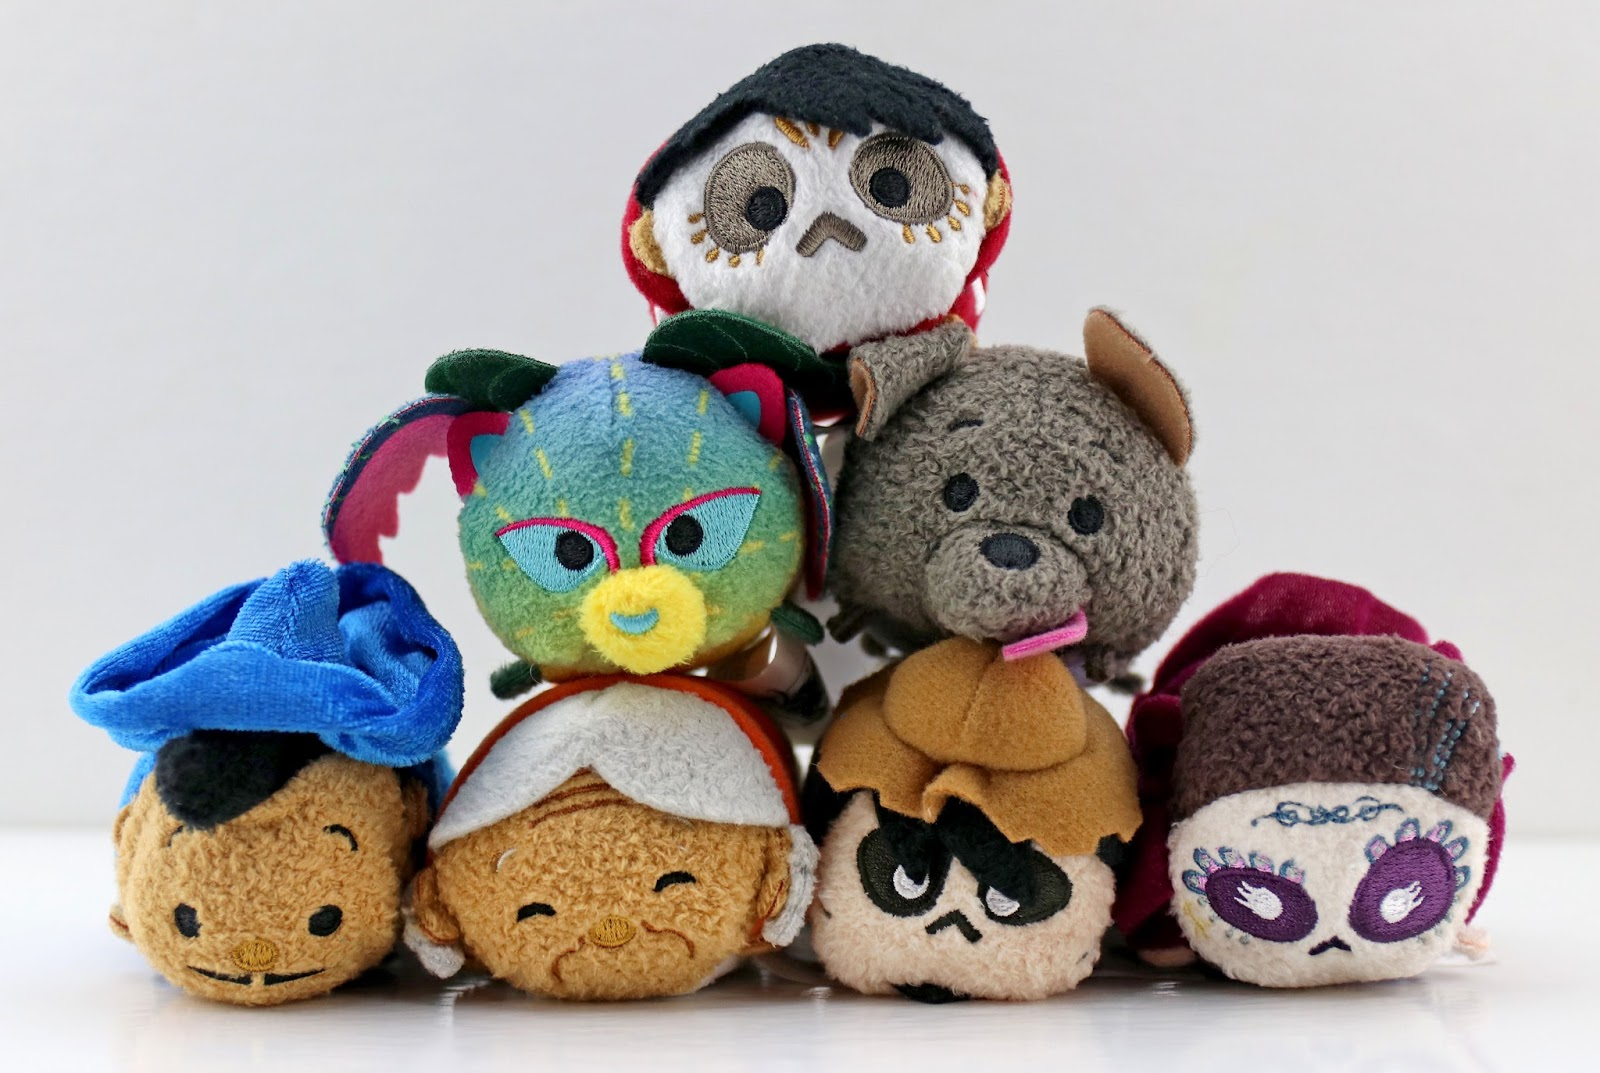 pixar coco disney store tsum tsum collection